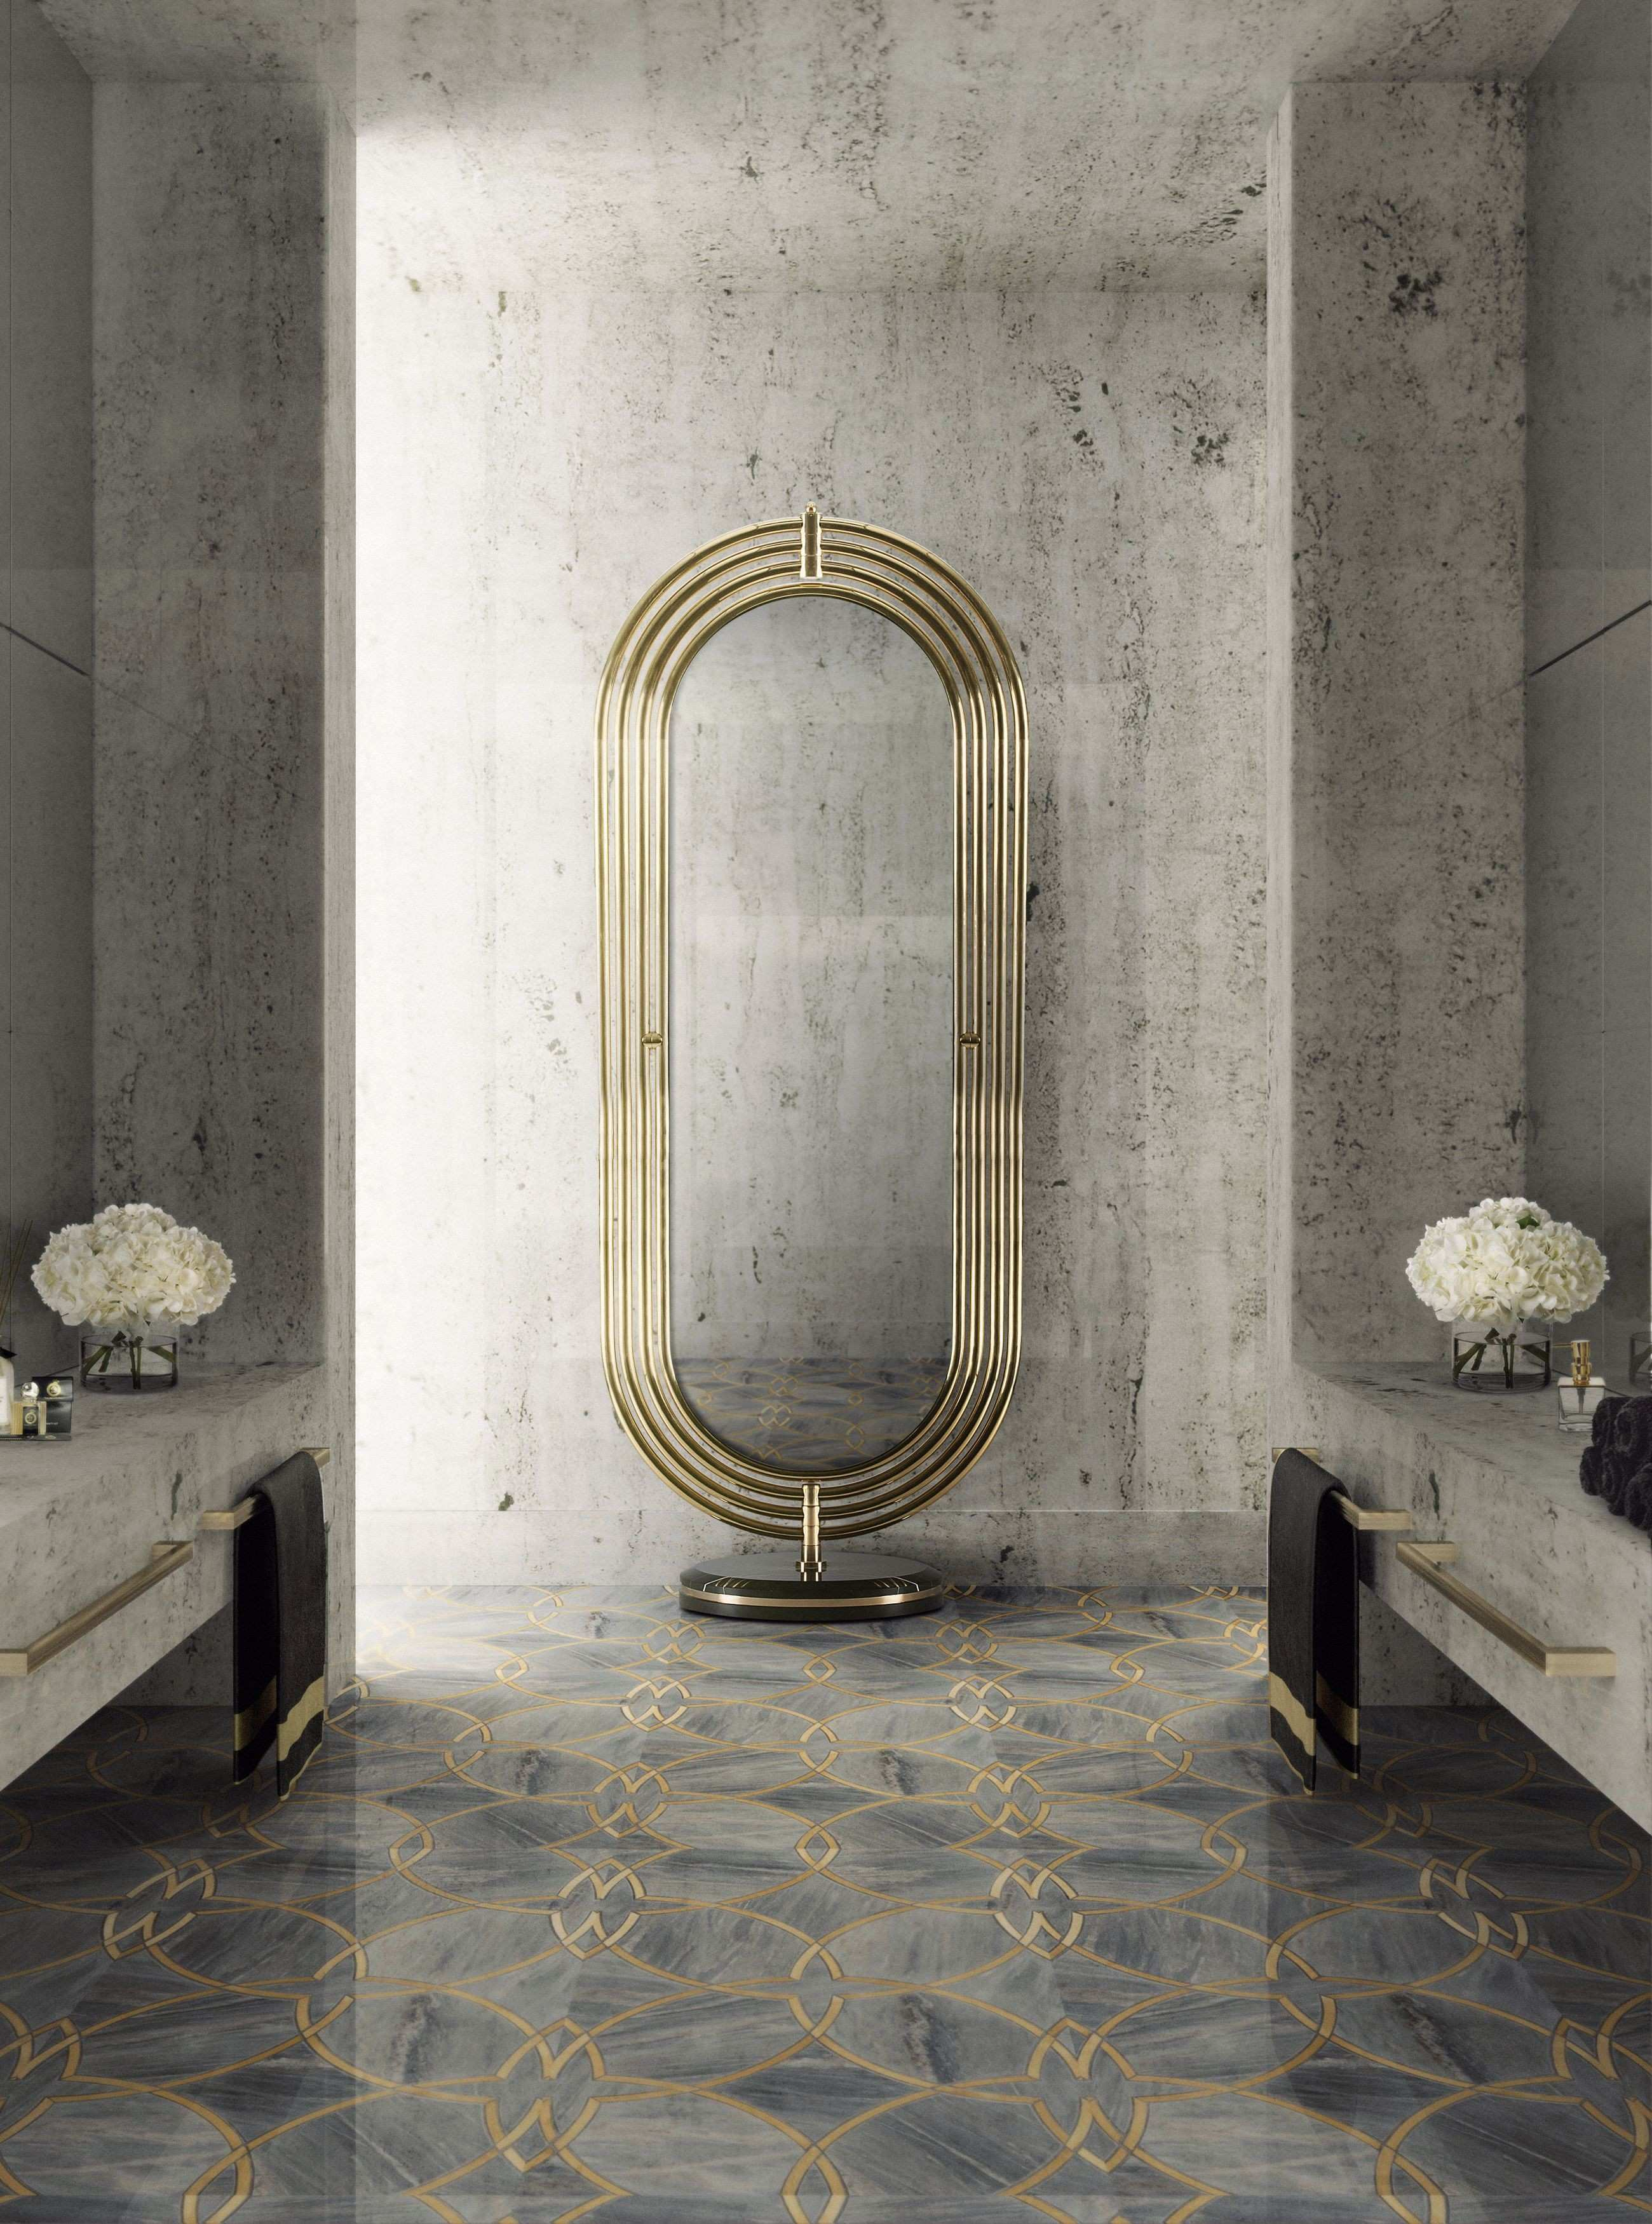 For a perfect and luxury bathroom decoration you must have the